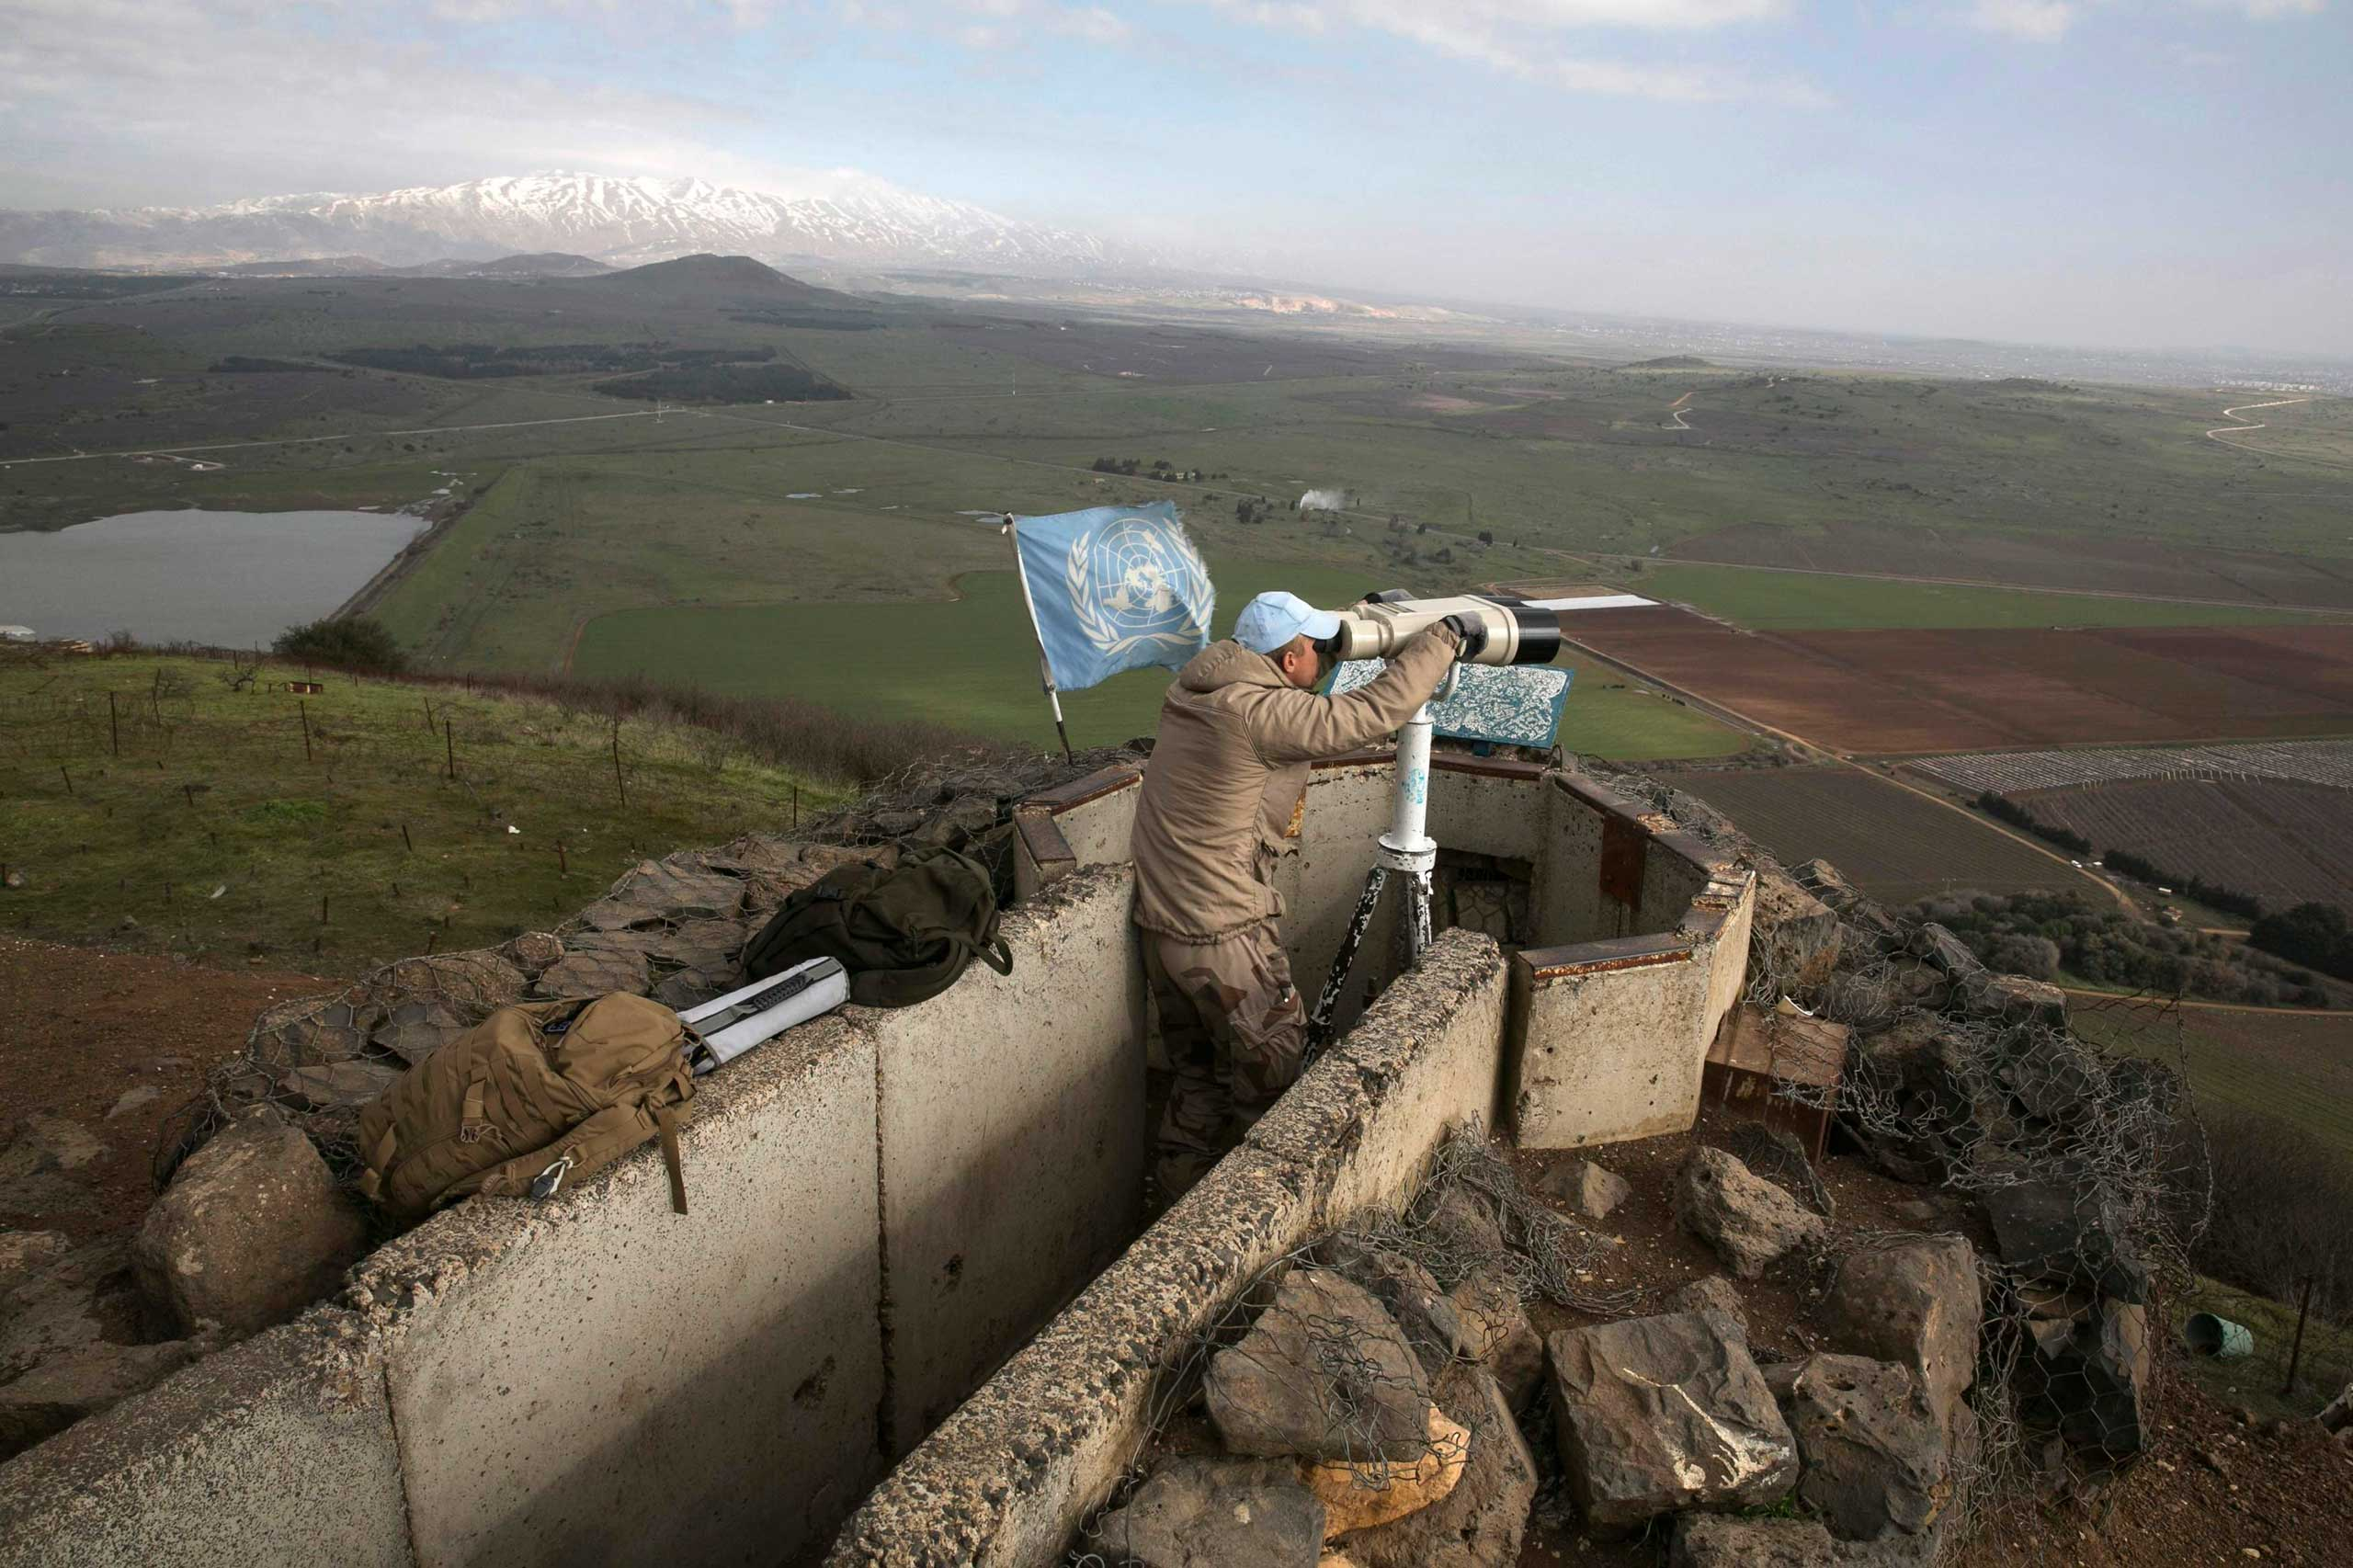 A member of the United Nations Disengagement Observer Force looks through binoculars at Mount Bental, an observation post in the Israeli occupied Golan Heights, Jan. 28, 2015.